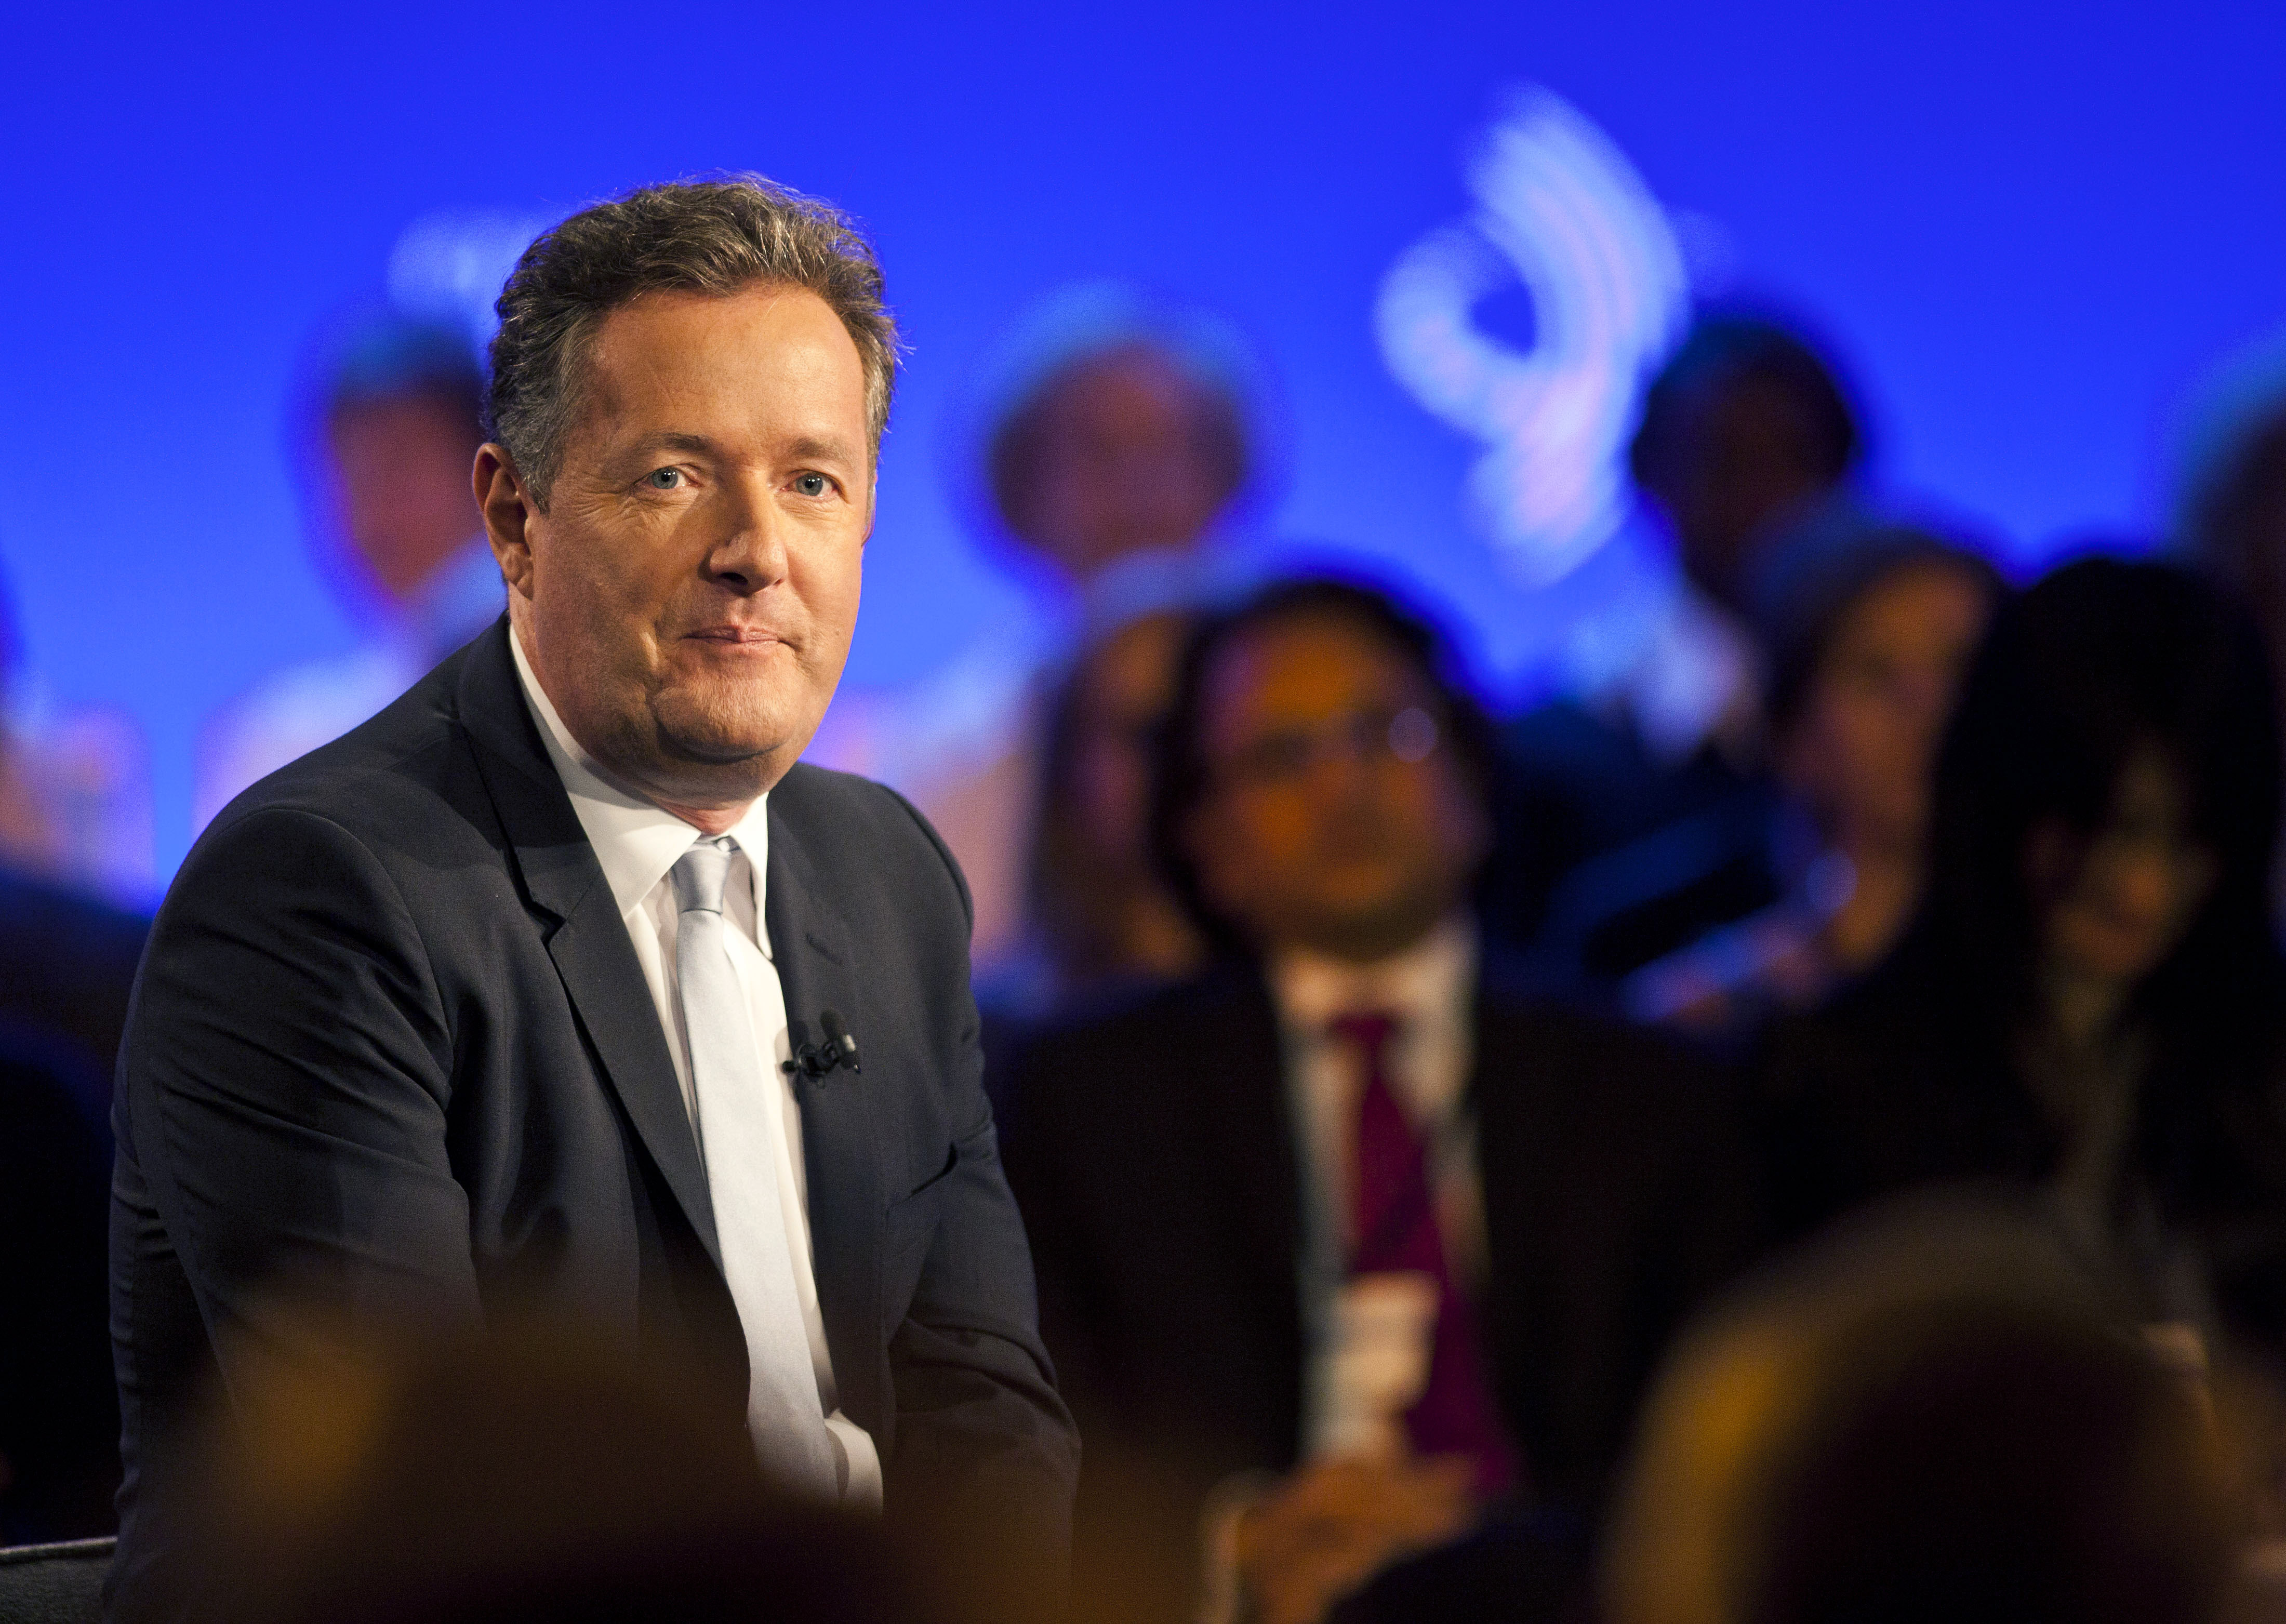 Piers Morgan, speaks during a taping of CNN's Piers Morgan Tonight at the annual Clinton Global Initiative (CGI) meeting on September 25, 2013 in New York City. Timed to coincide with the United Nations General Assembly, CGI brings together heads of state, CEOs, philanthropists and others to help find solutions to the world's major problems. (Getty Images)